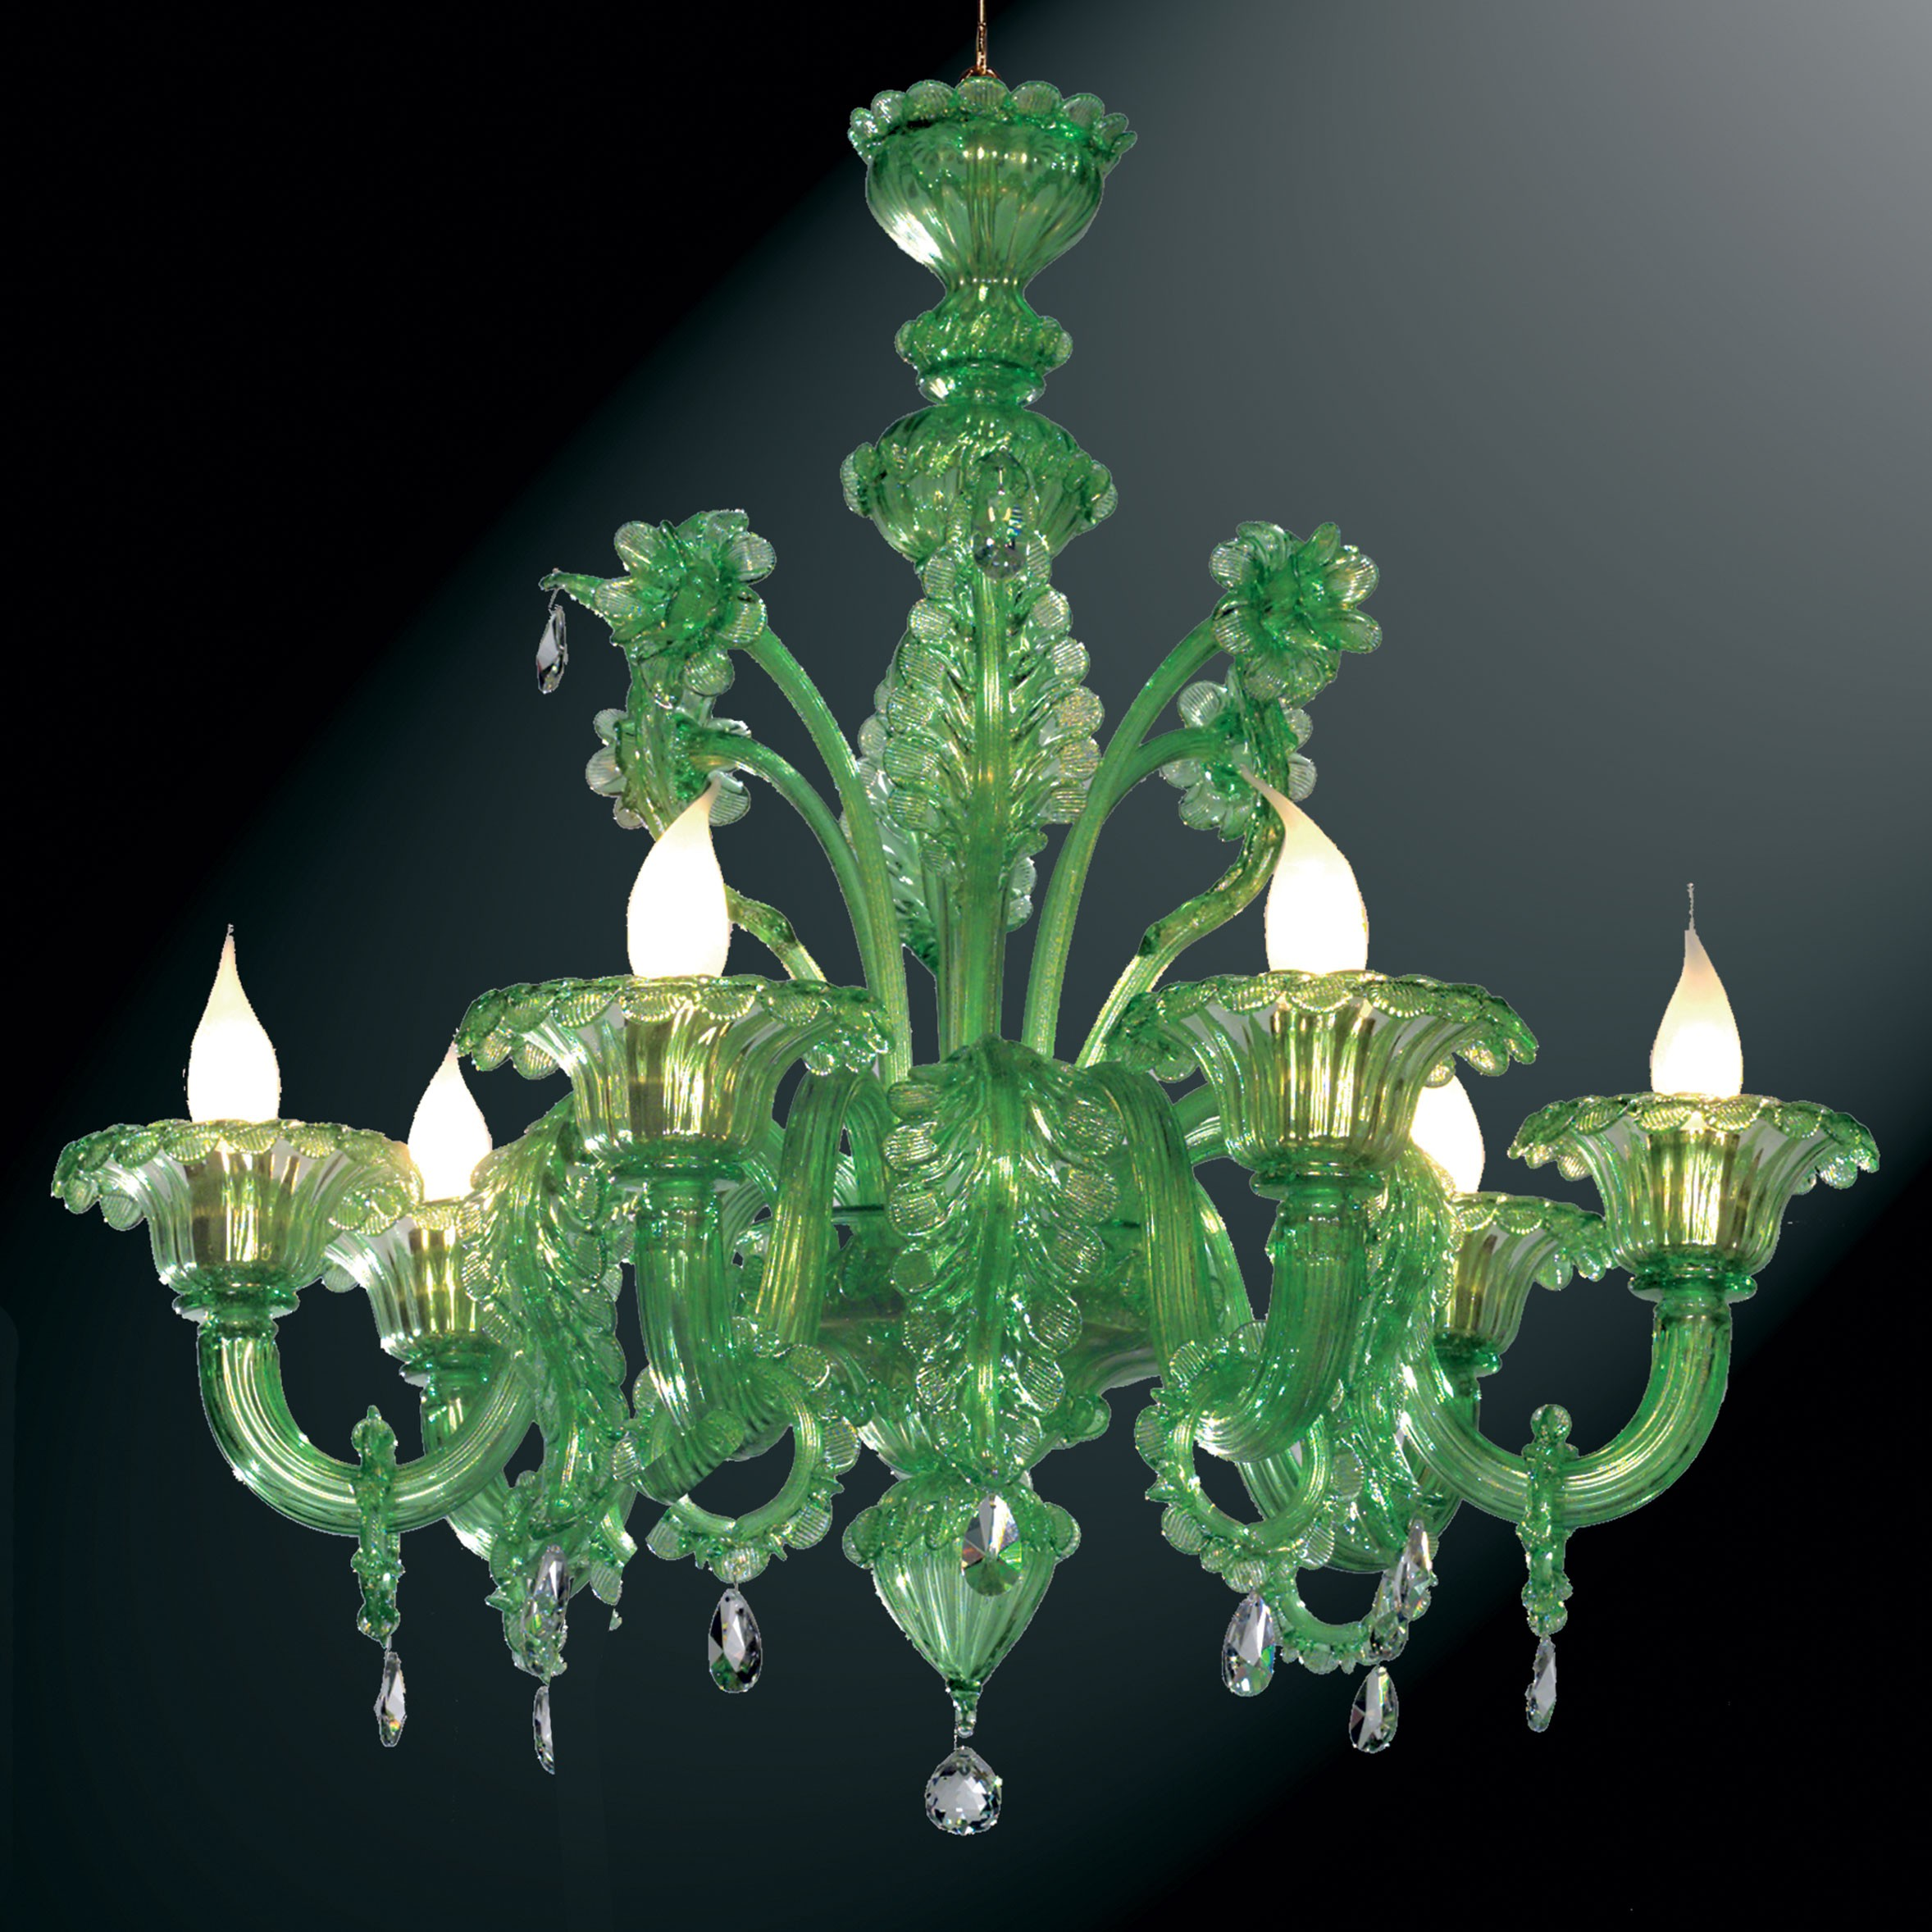 photo emerald glass drops il chic gallery fullxfull listing crystals green droplets chandelier